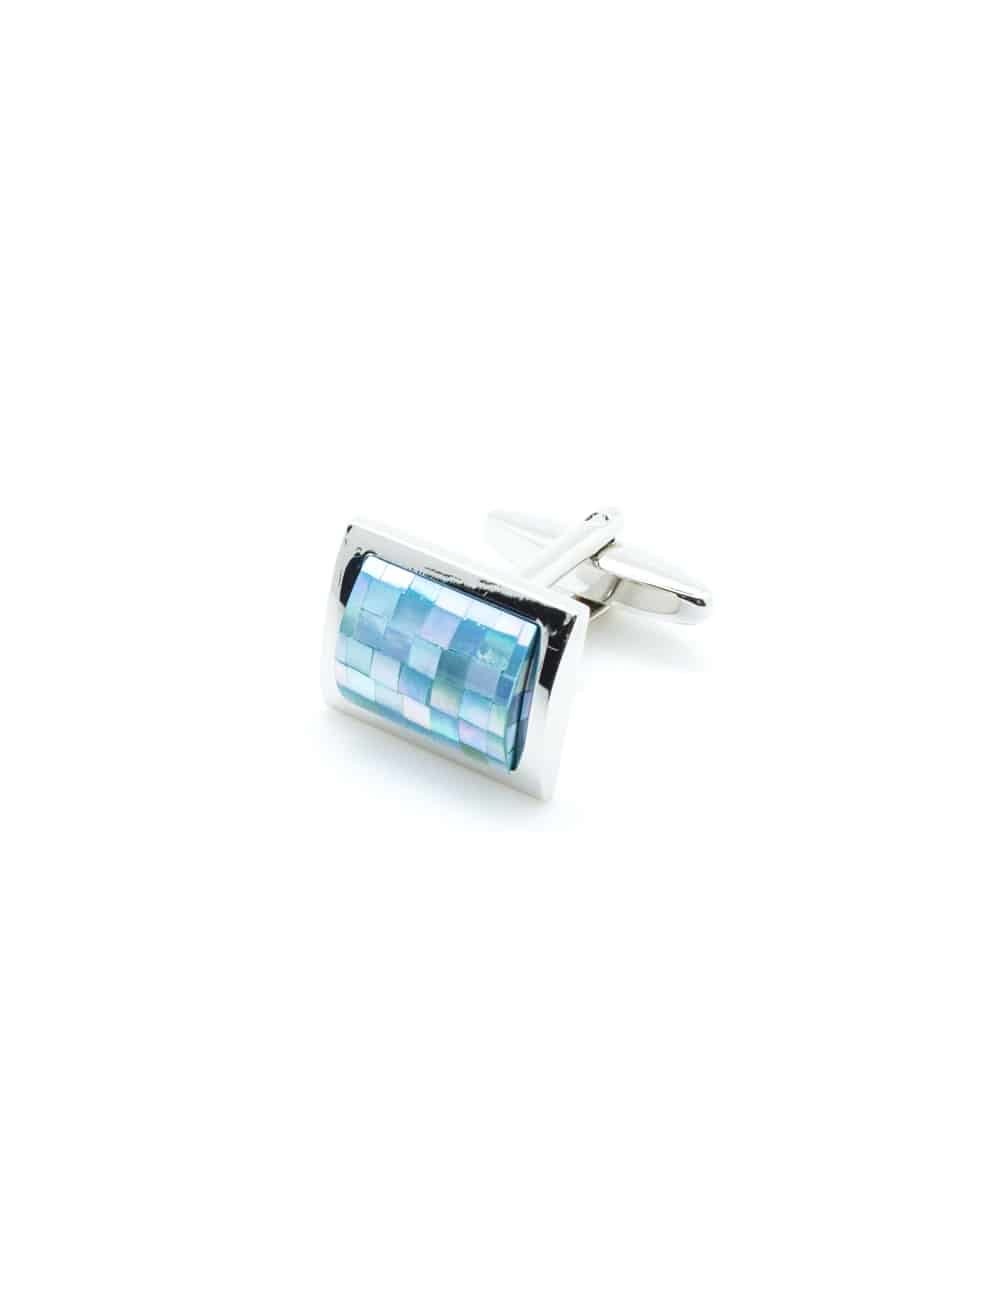 Chrome silver cufflink with blue checkered mother of pearl C131FP-024a